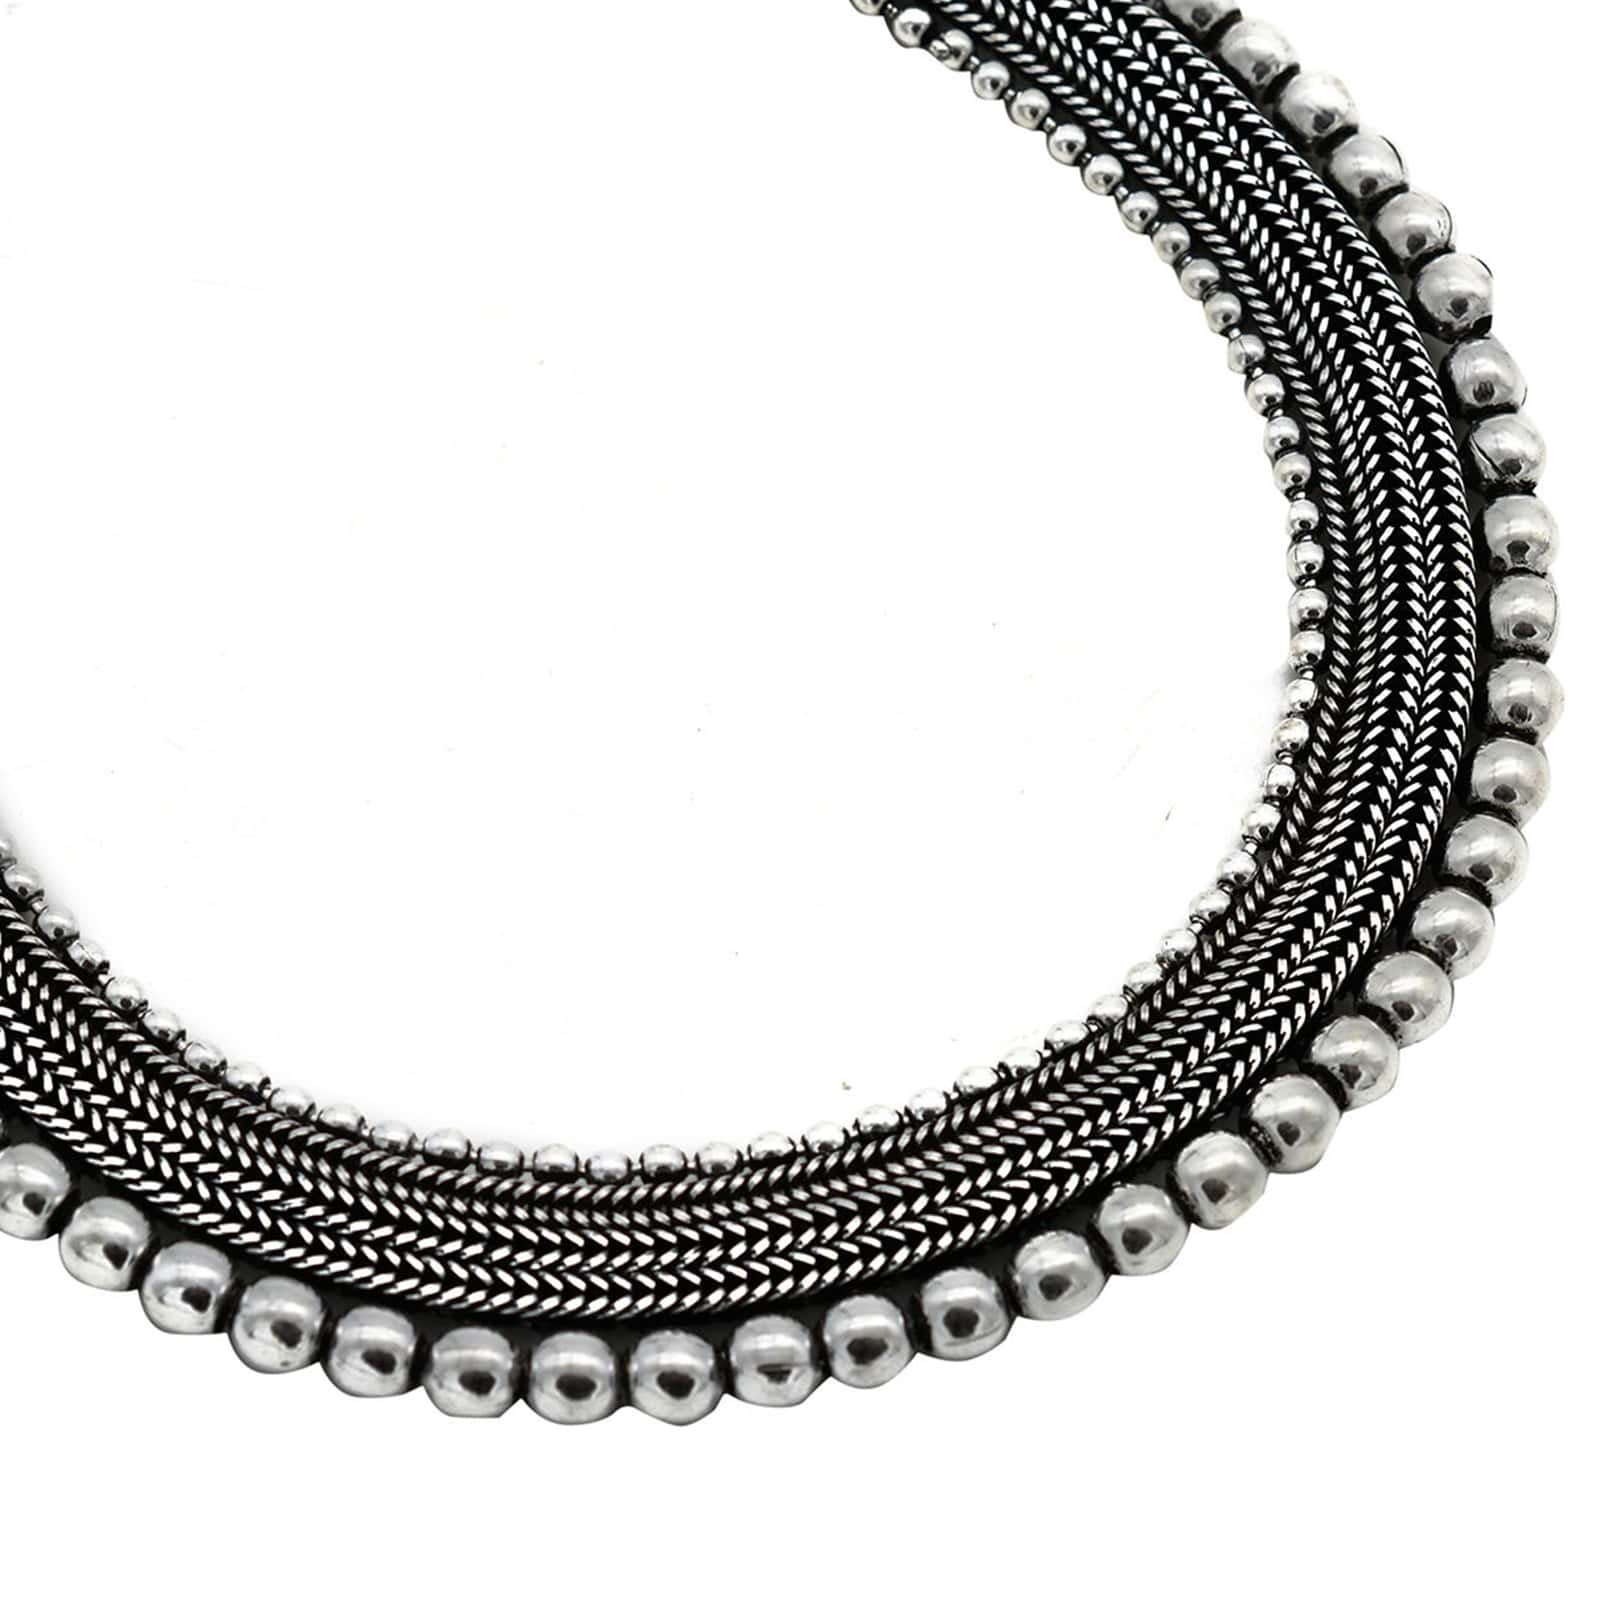 Mira Silver Oxidized Necklace - Teejh